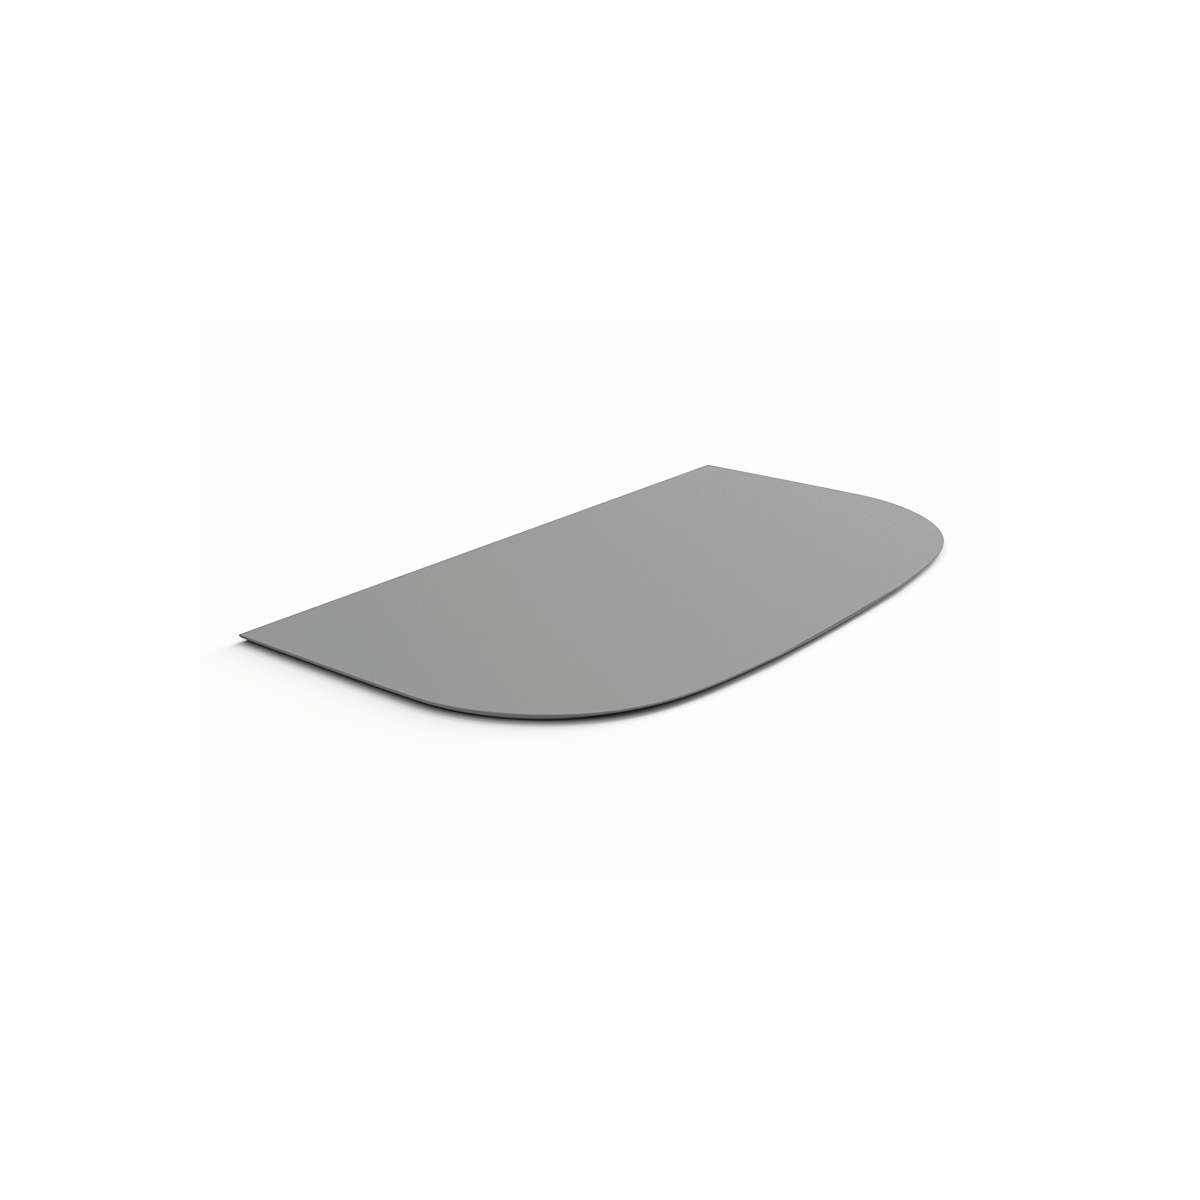 SUREFEED FEEDER MAT GREY 00001